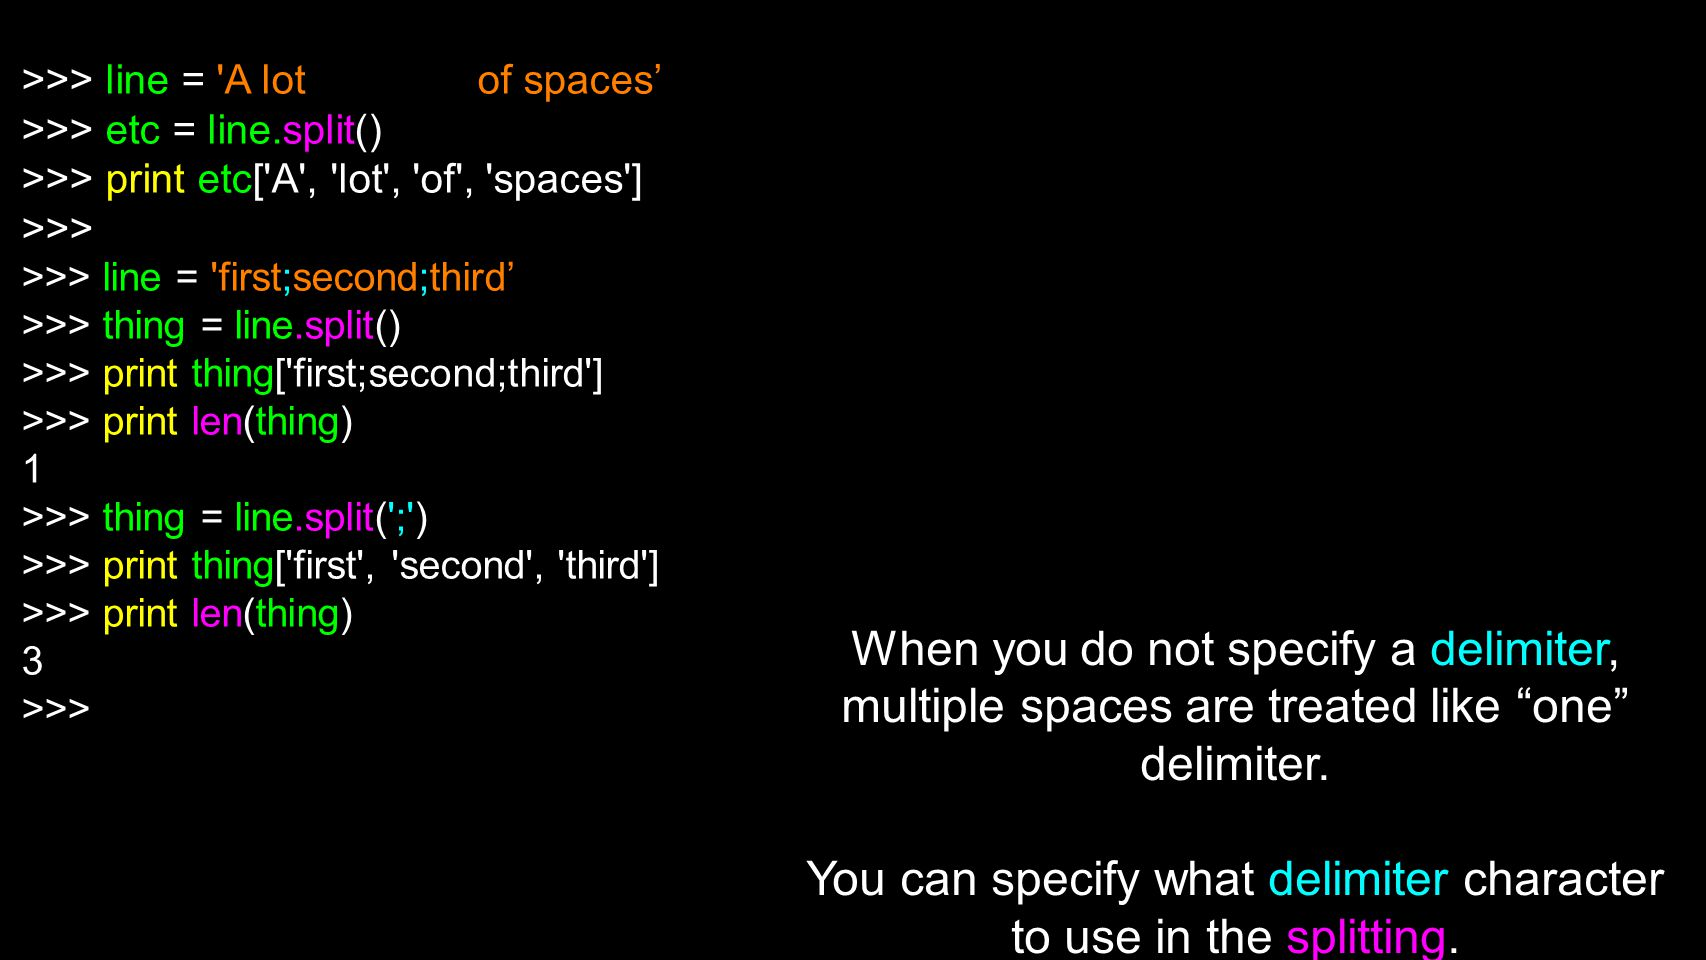 You can specify what delimiter character to use in the splitting.